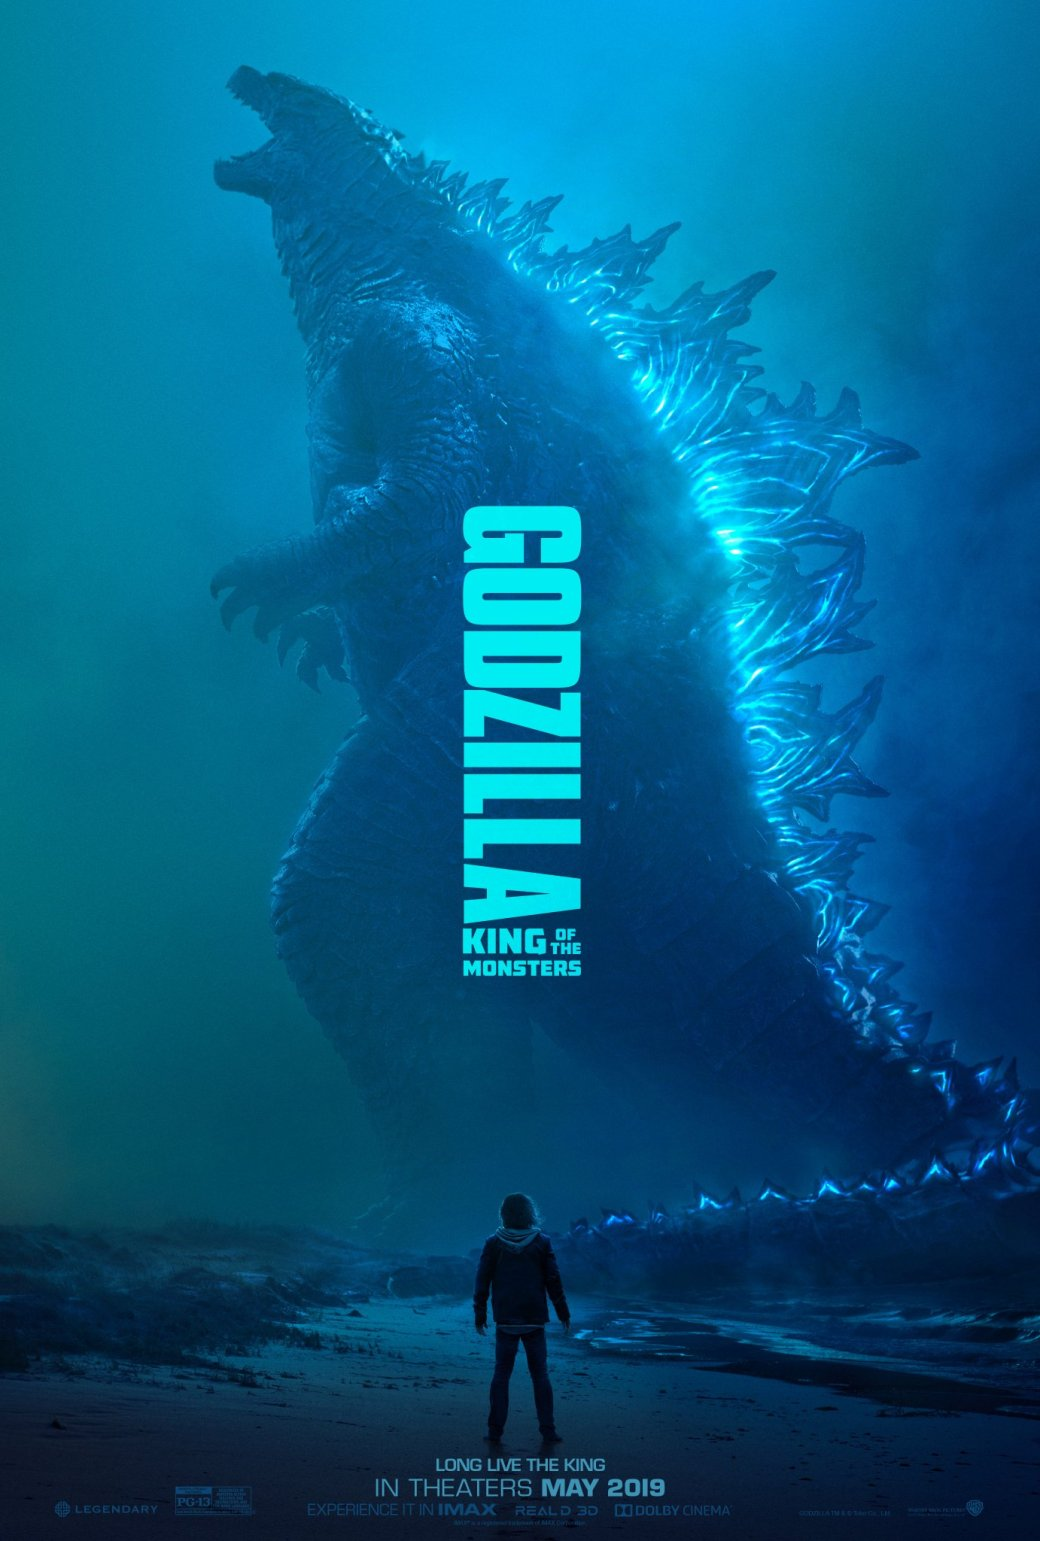 Go Movies Guide Century Cinemax From 7th to 13th June 2019 – Go